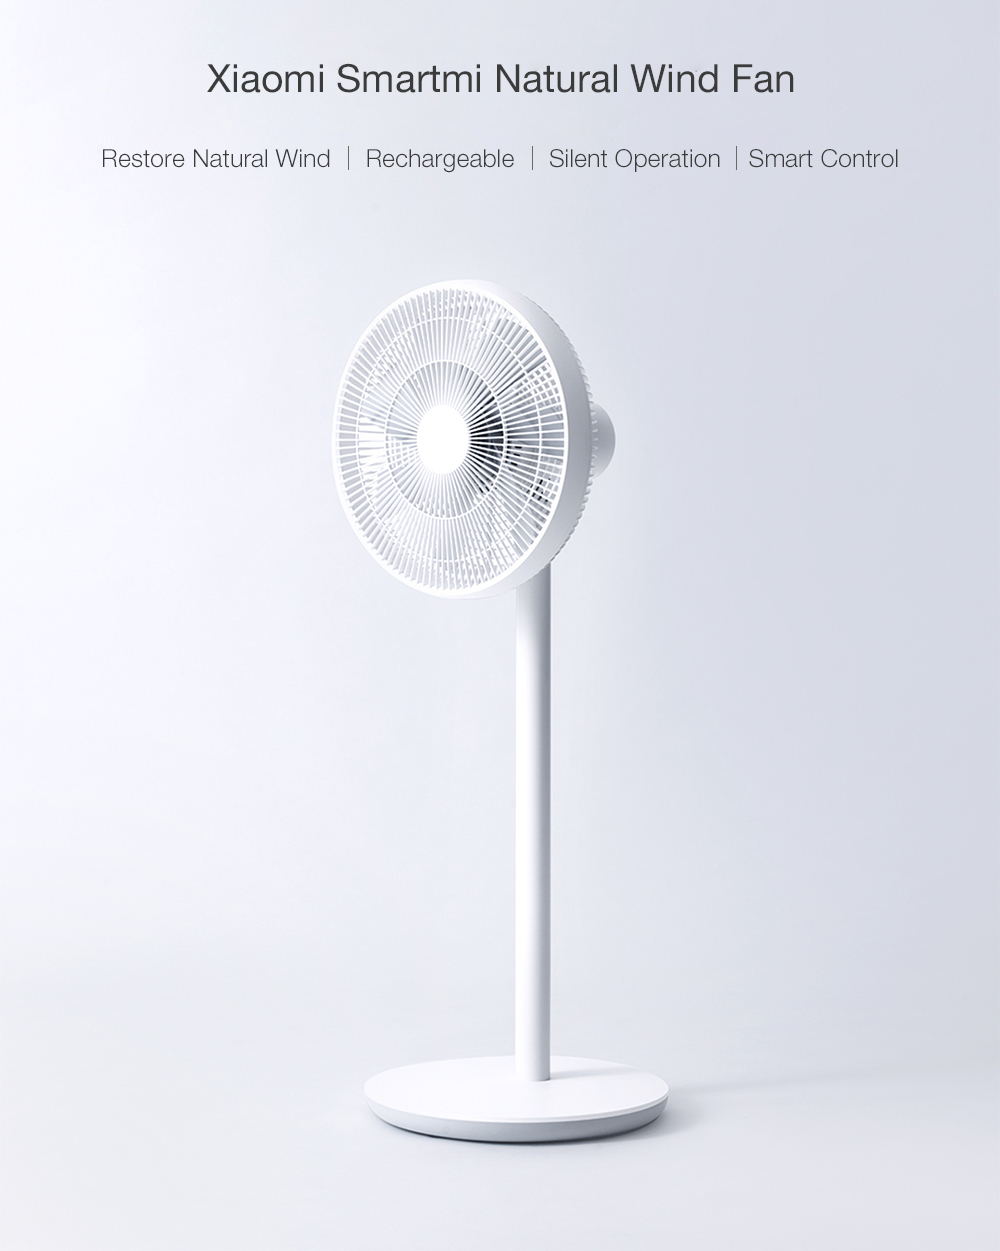 Xiaomi Smartmi Home Wireless Smart Natural Wind DC Frequency Stand Fan with Mijia APP Control